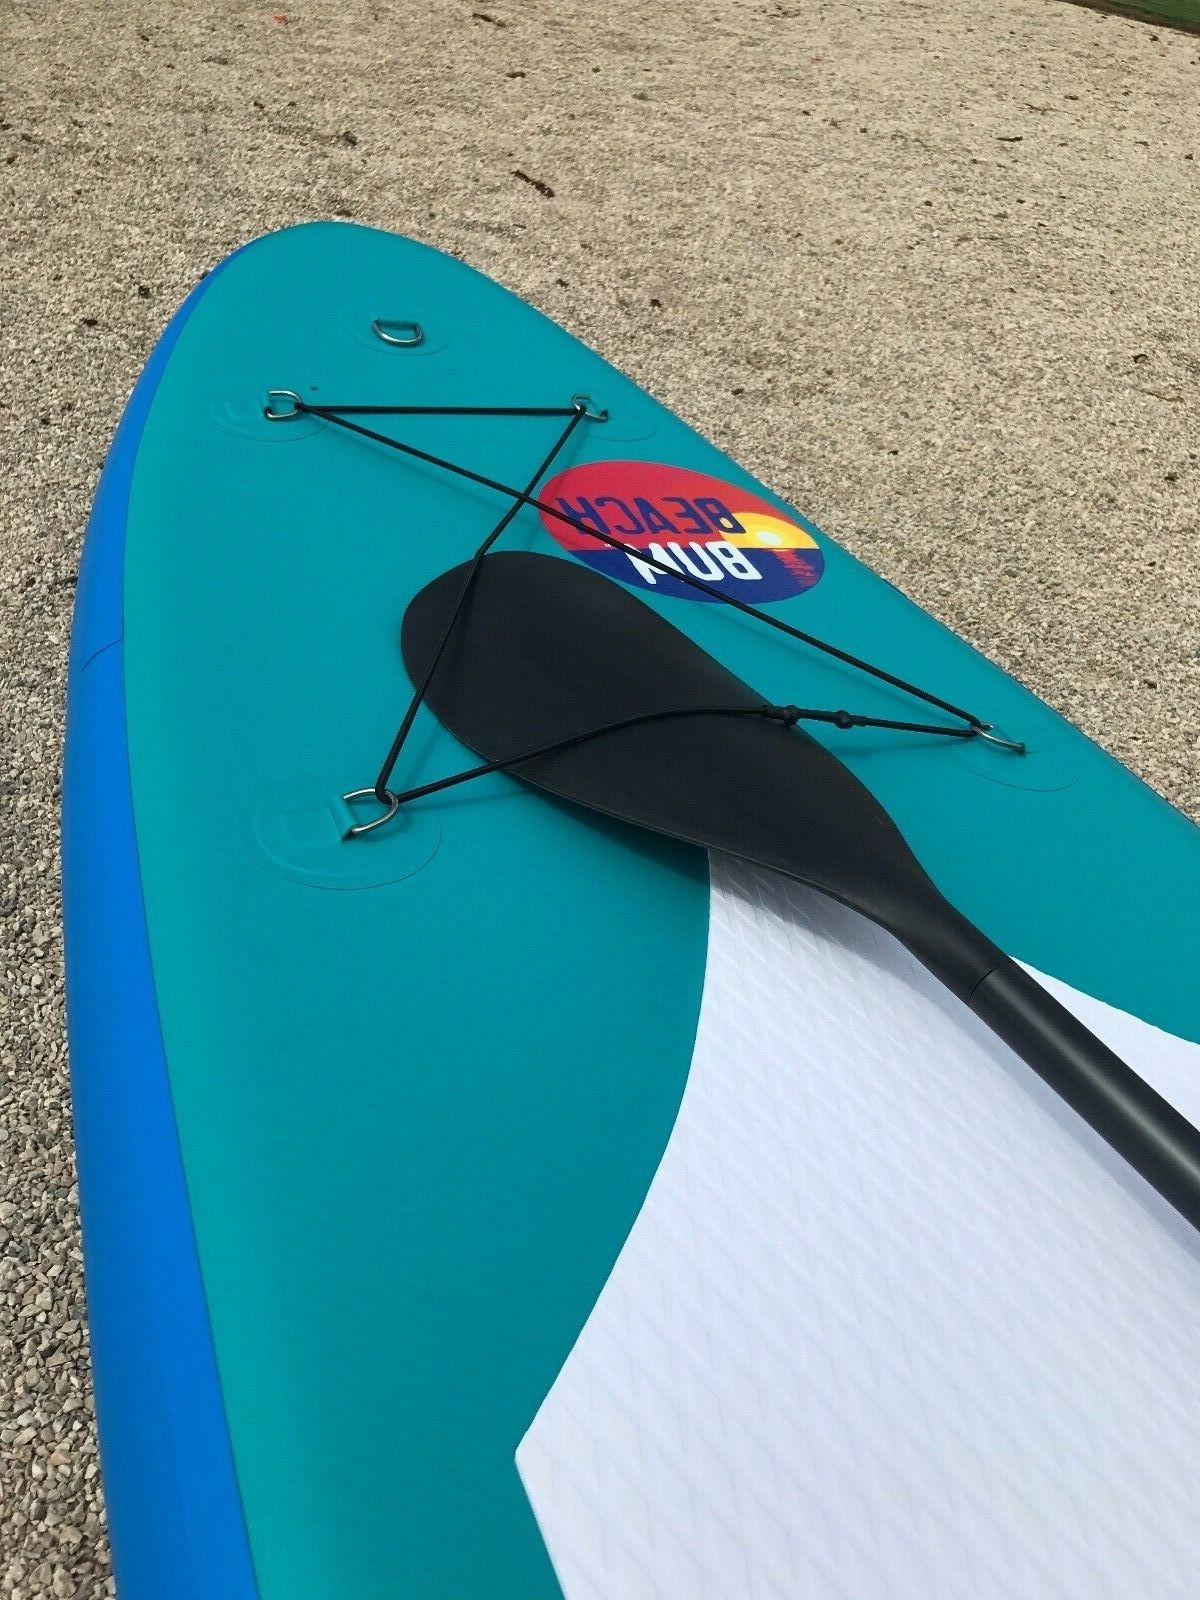 "Beach Bum SPK3 - 10' 10"" Inflatable Up Board"